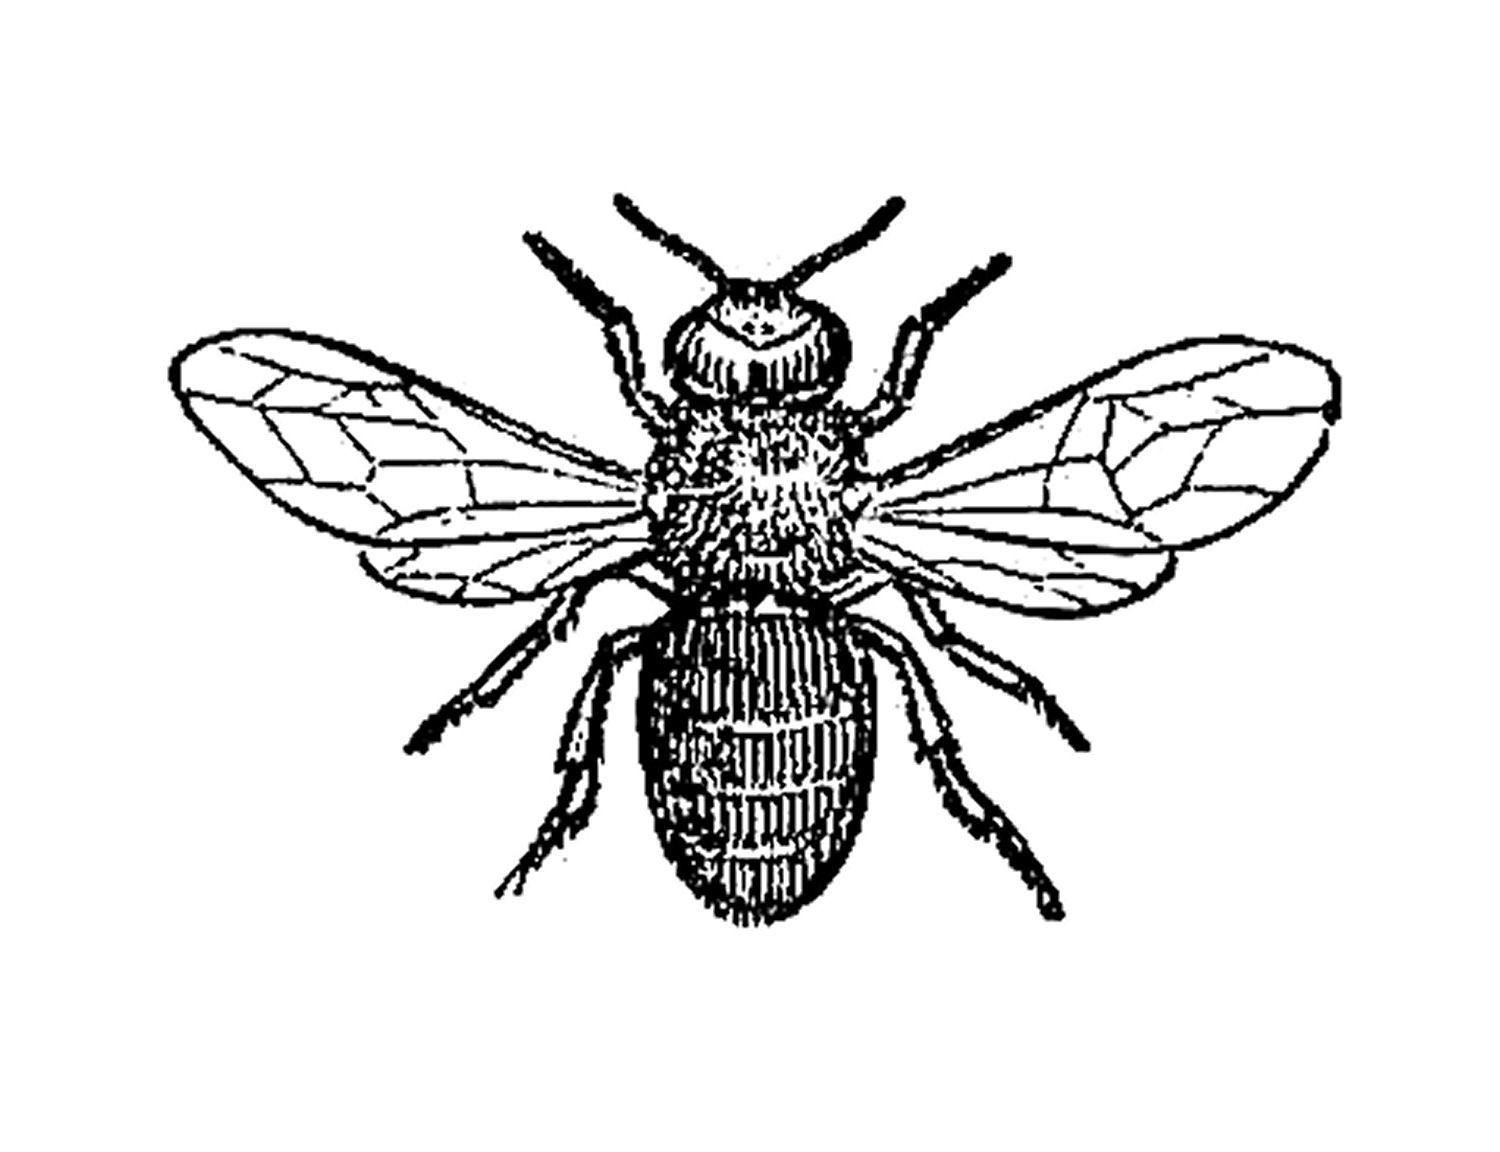 Antique Images: Insect Clip Art: Black and White